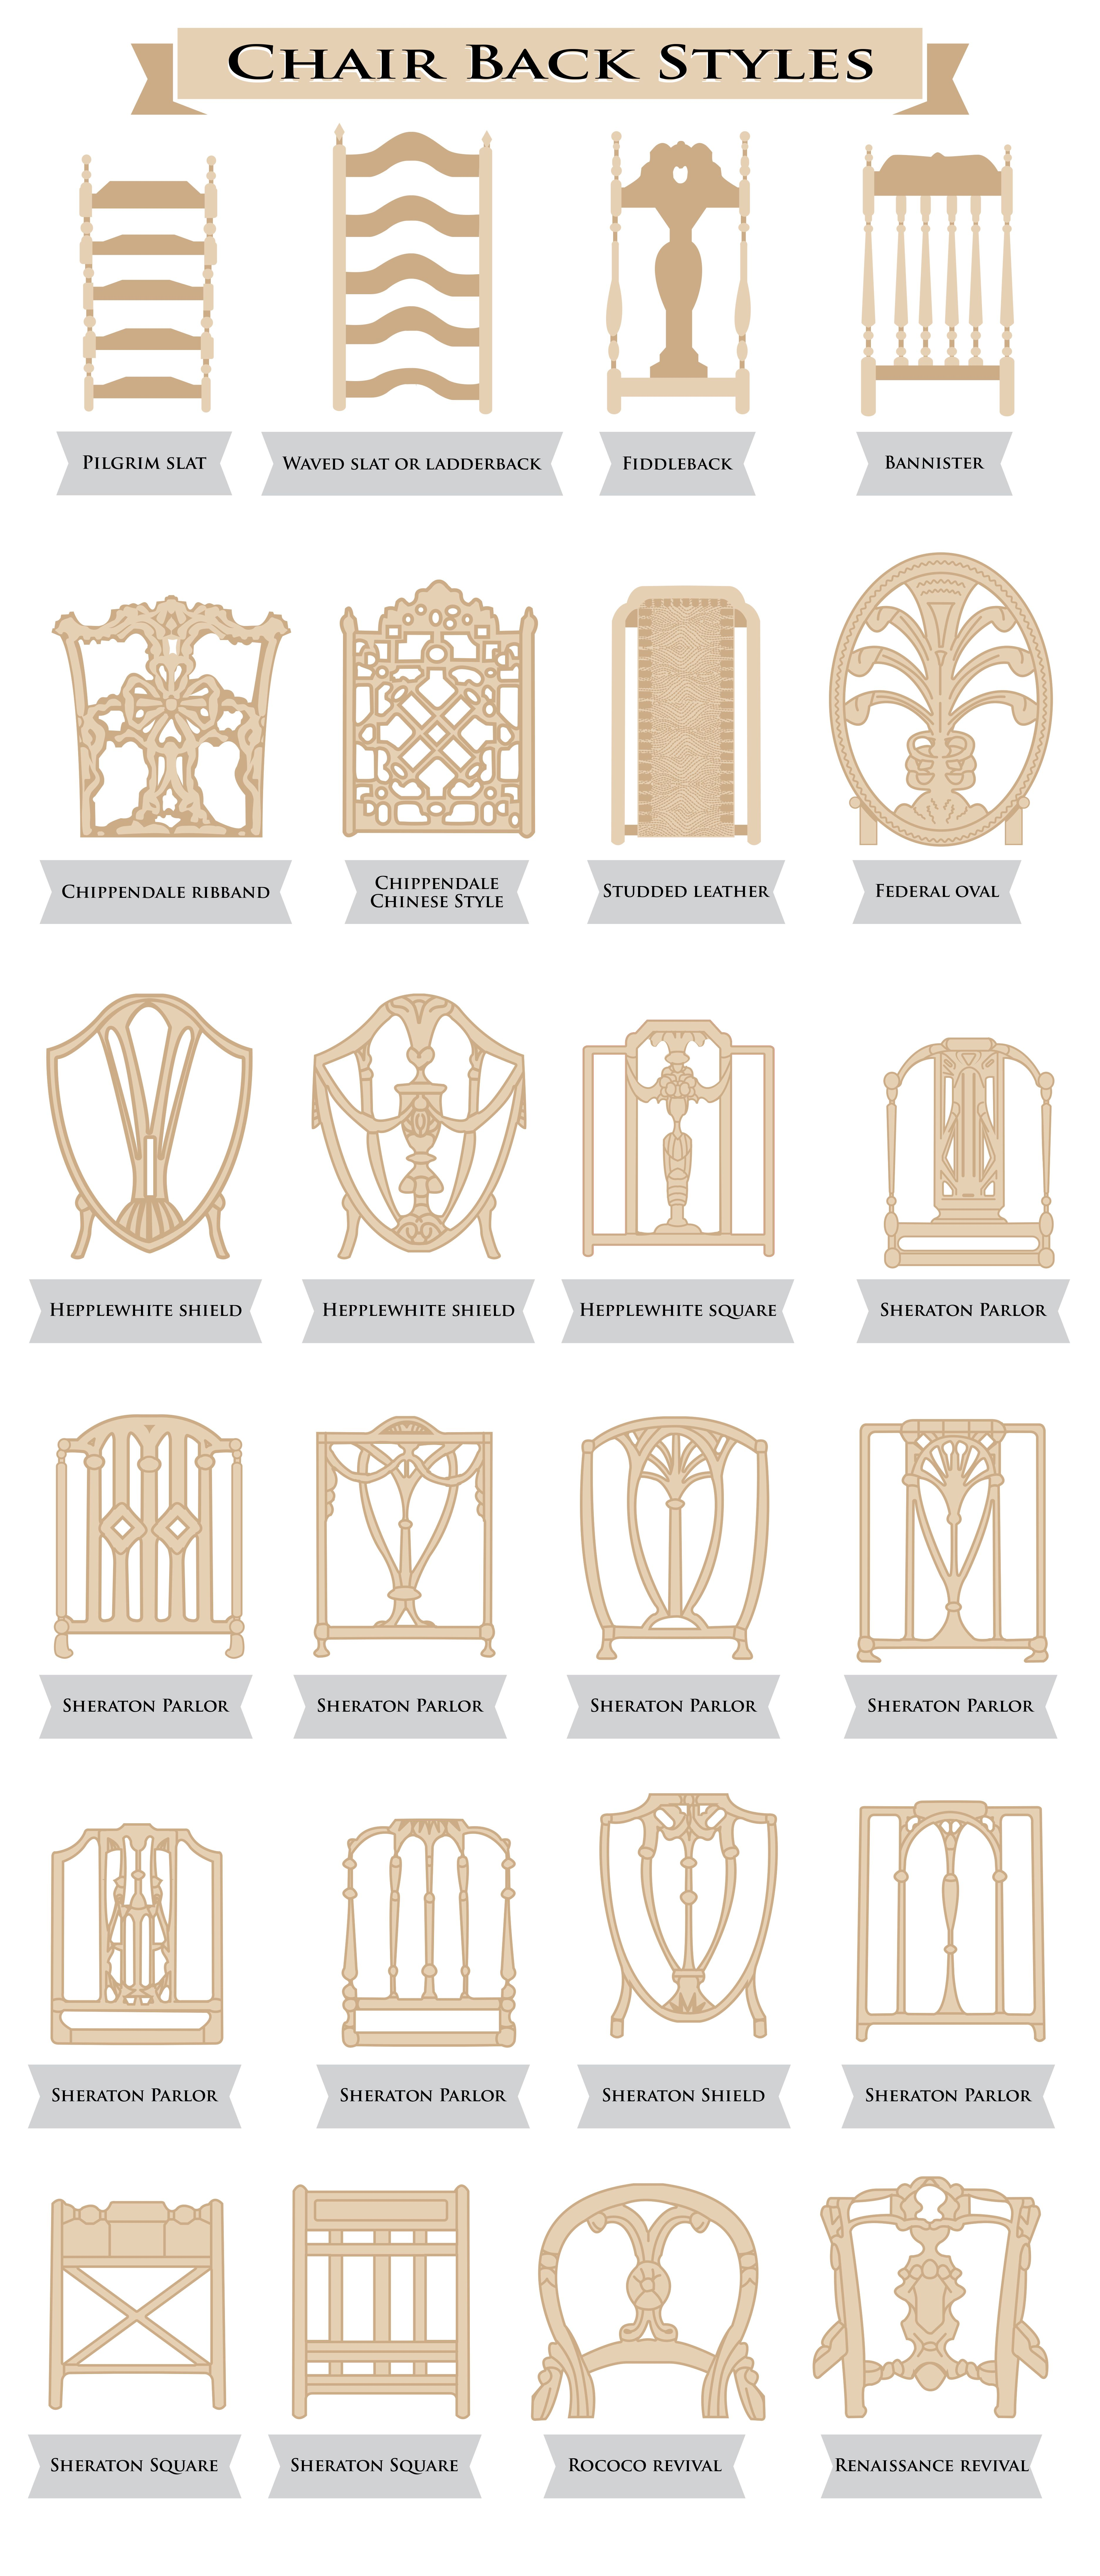 The Ultimate Chair Back Styles Guide 24 Illustrated Styles Chair Backs Arm Chair Styles Furniture Styles Guide